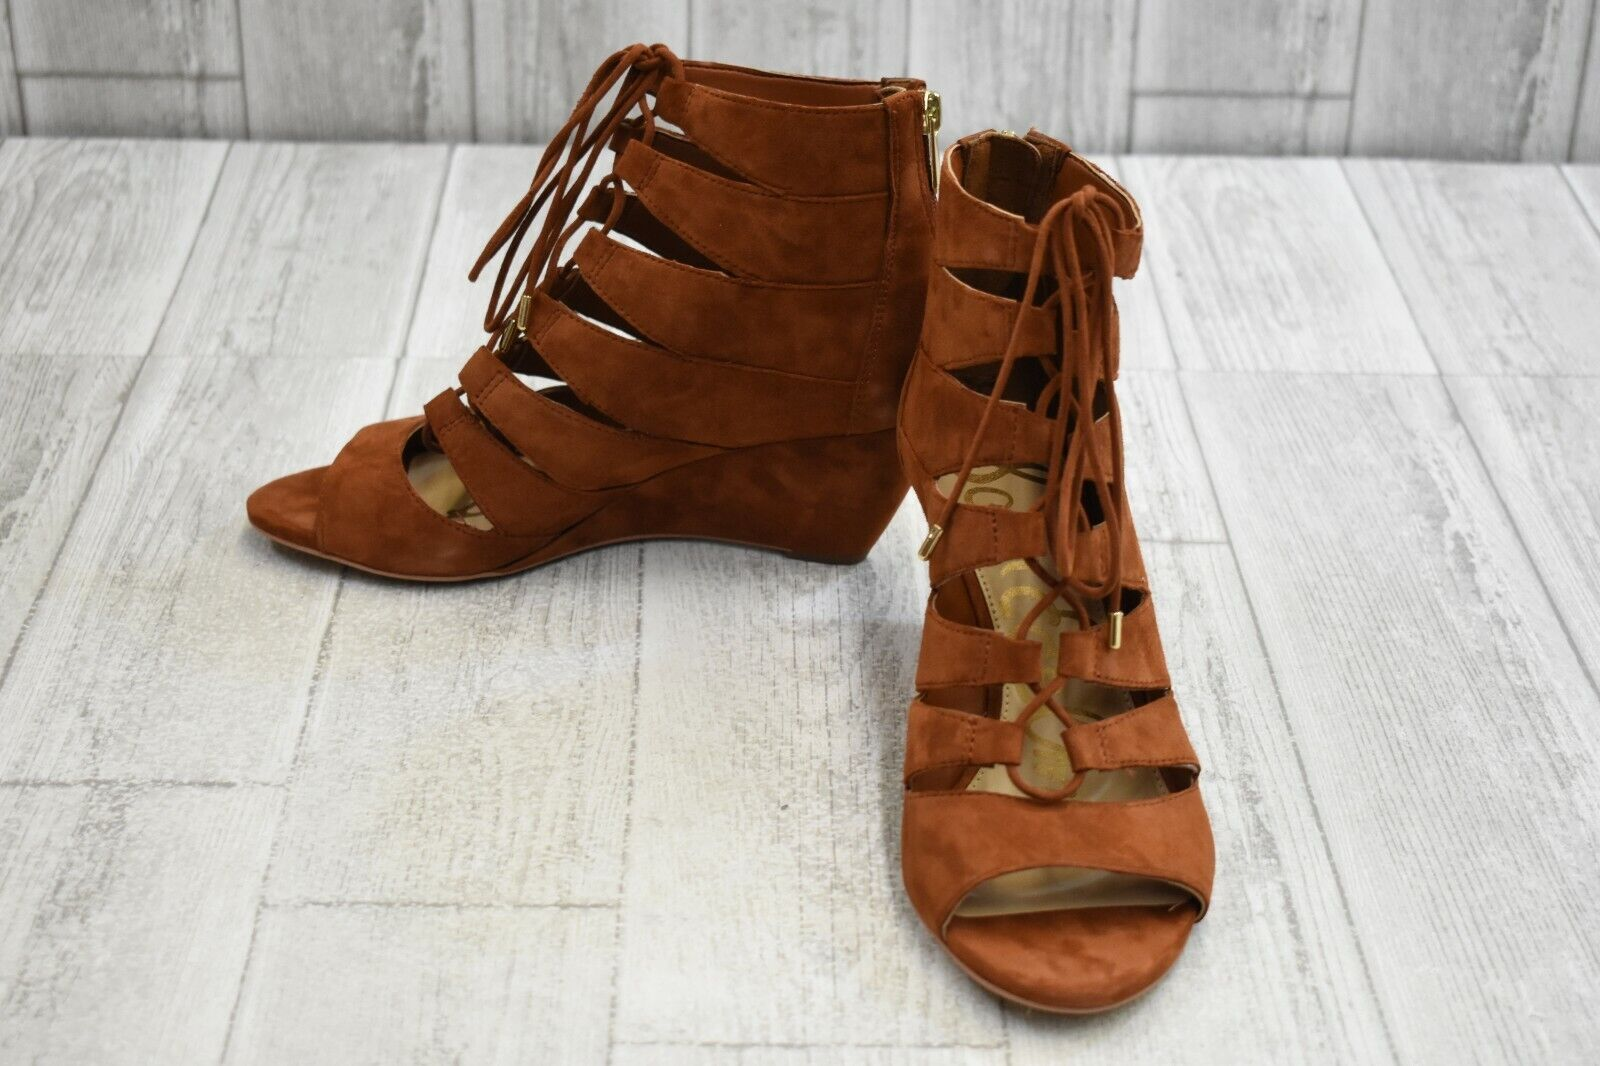 Sam Edelman Santina Lace Up Suede Wedge Sandals, Women's Size 8.5M, Cinnamon